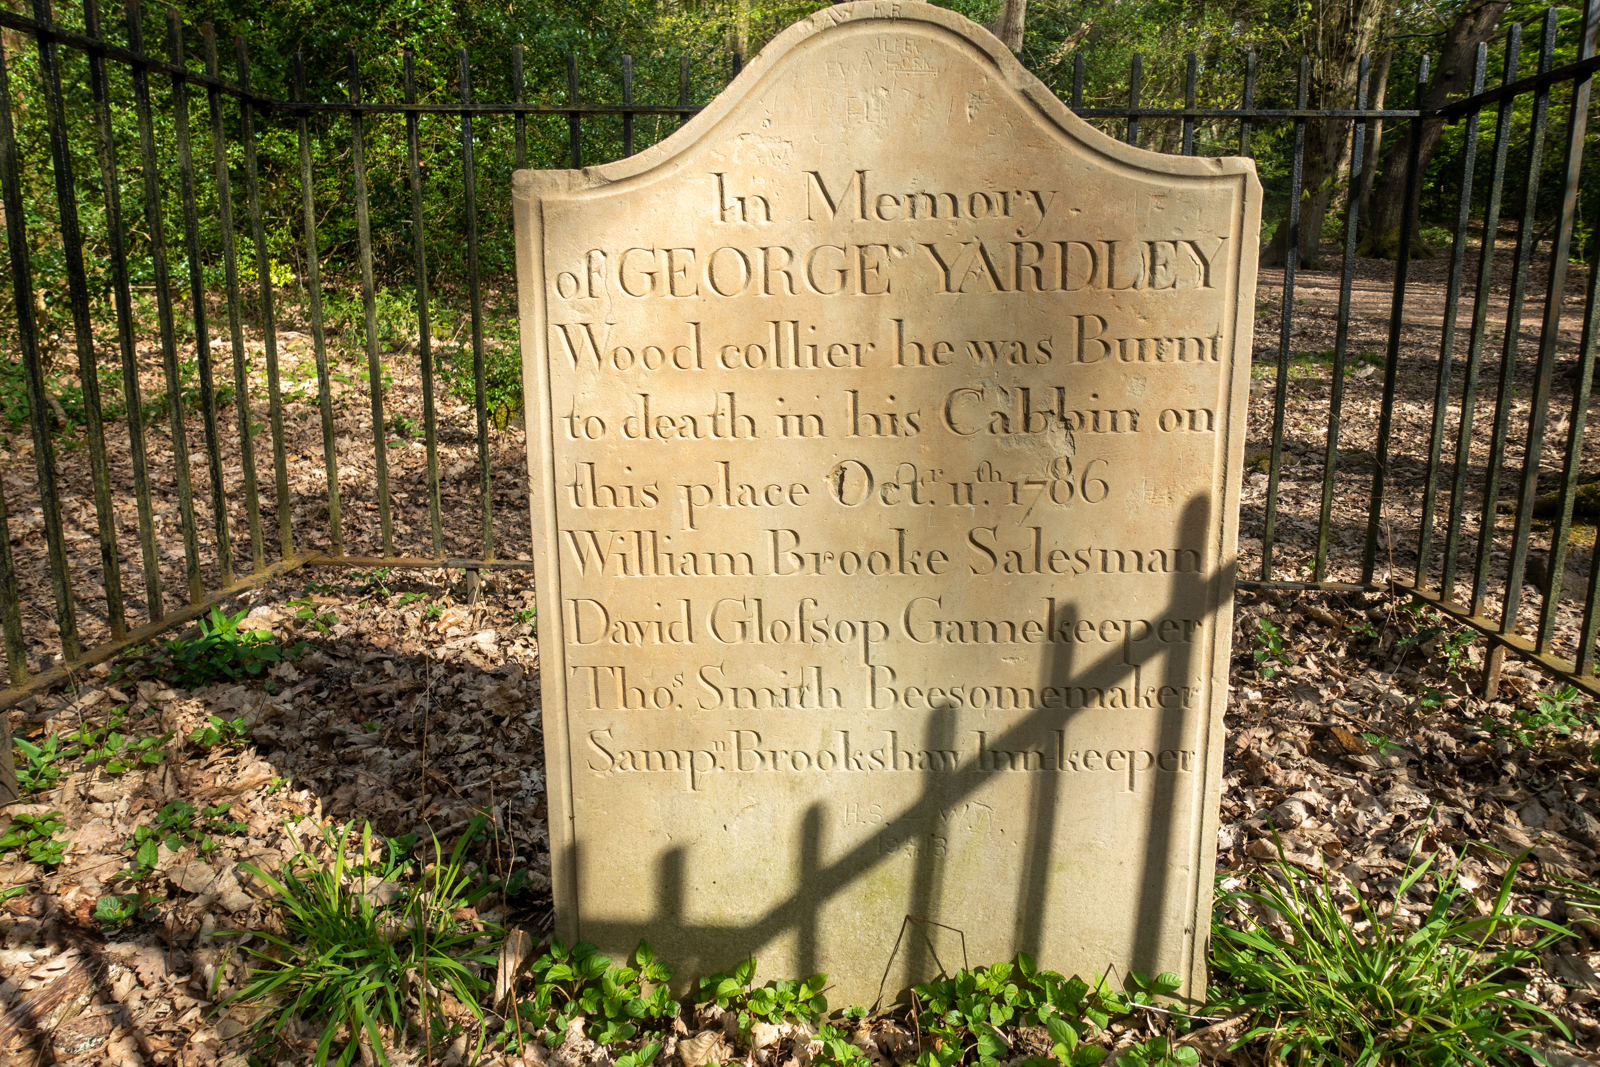 Ecclesall Woods – historic features